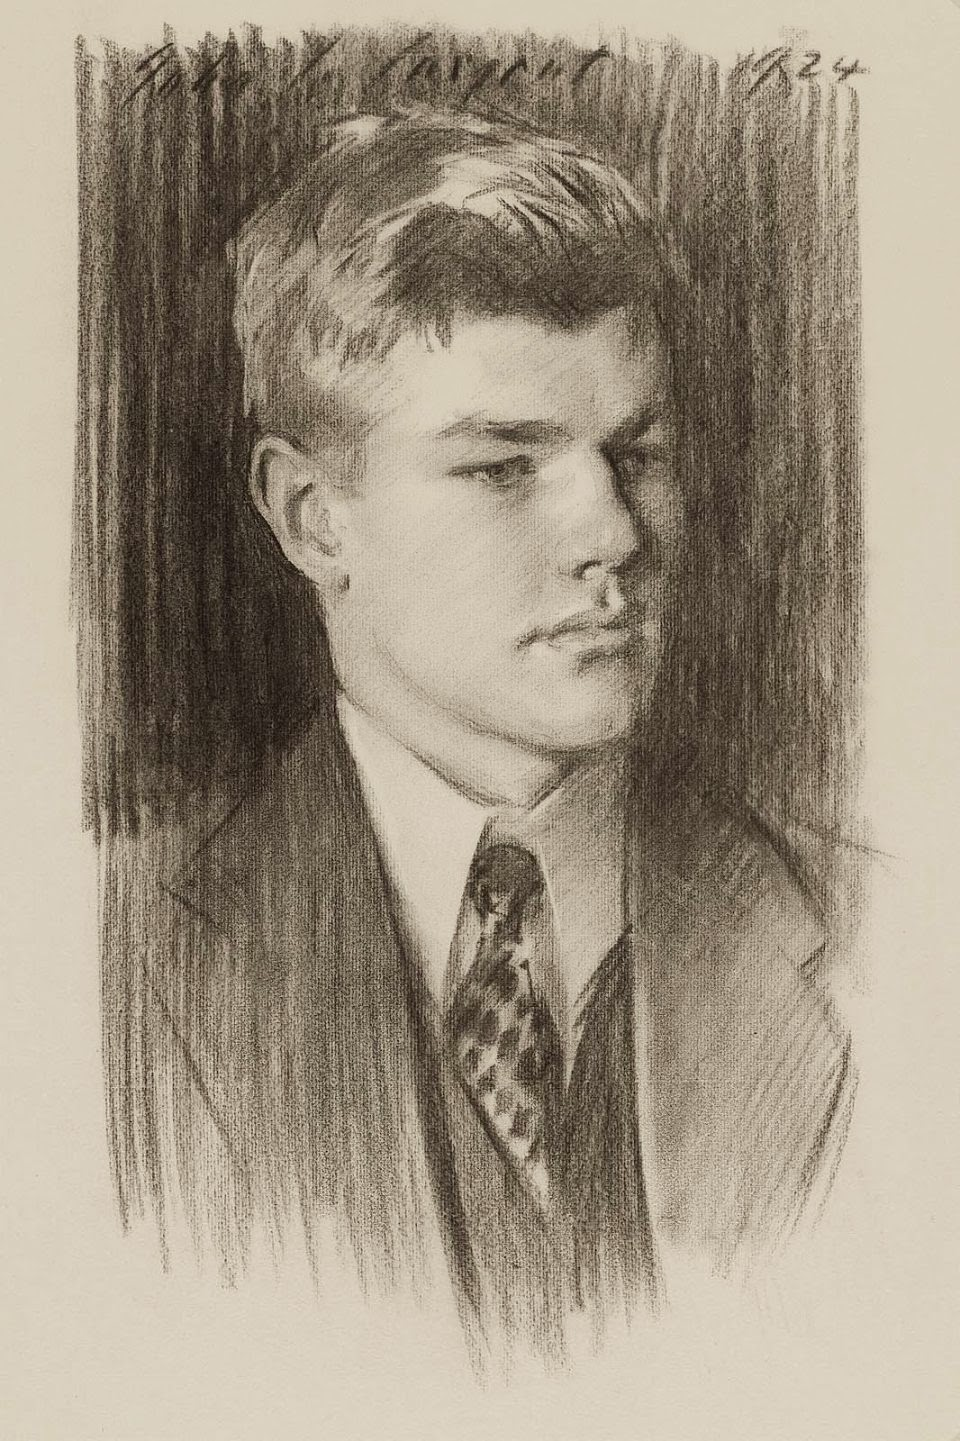 art artists john singer sargent part  1924 harold irving pratt jr at age 20 charcoal on cream paper 60 x 45 cm museum of fine arts boston ma